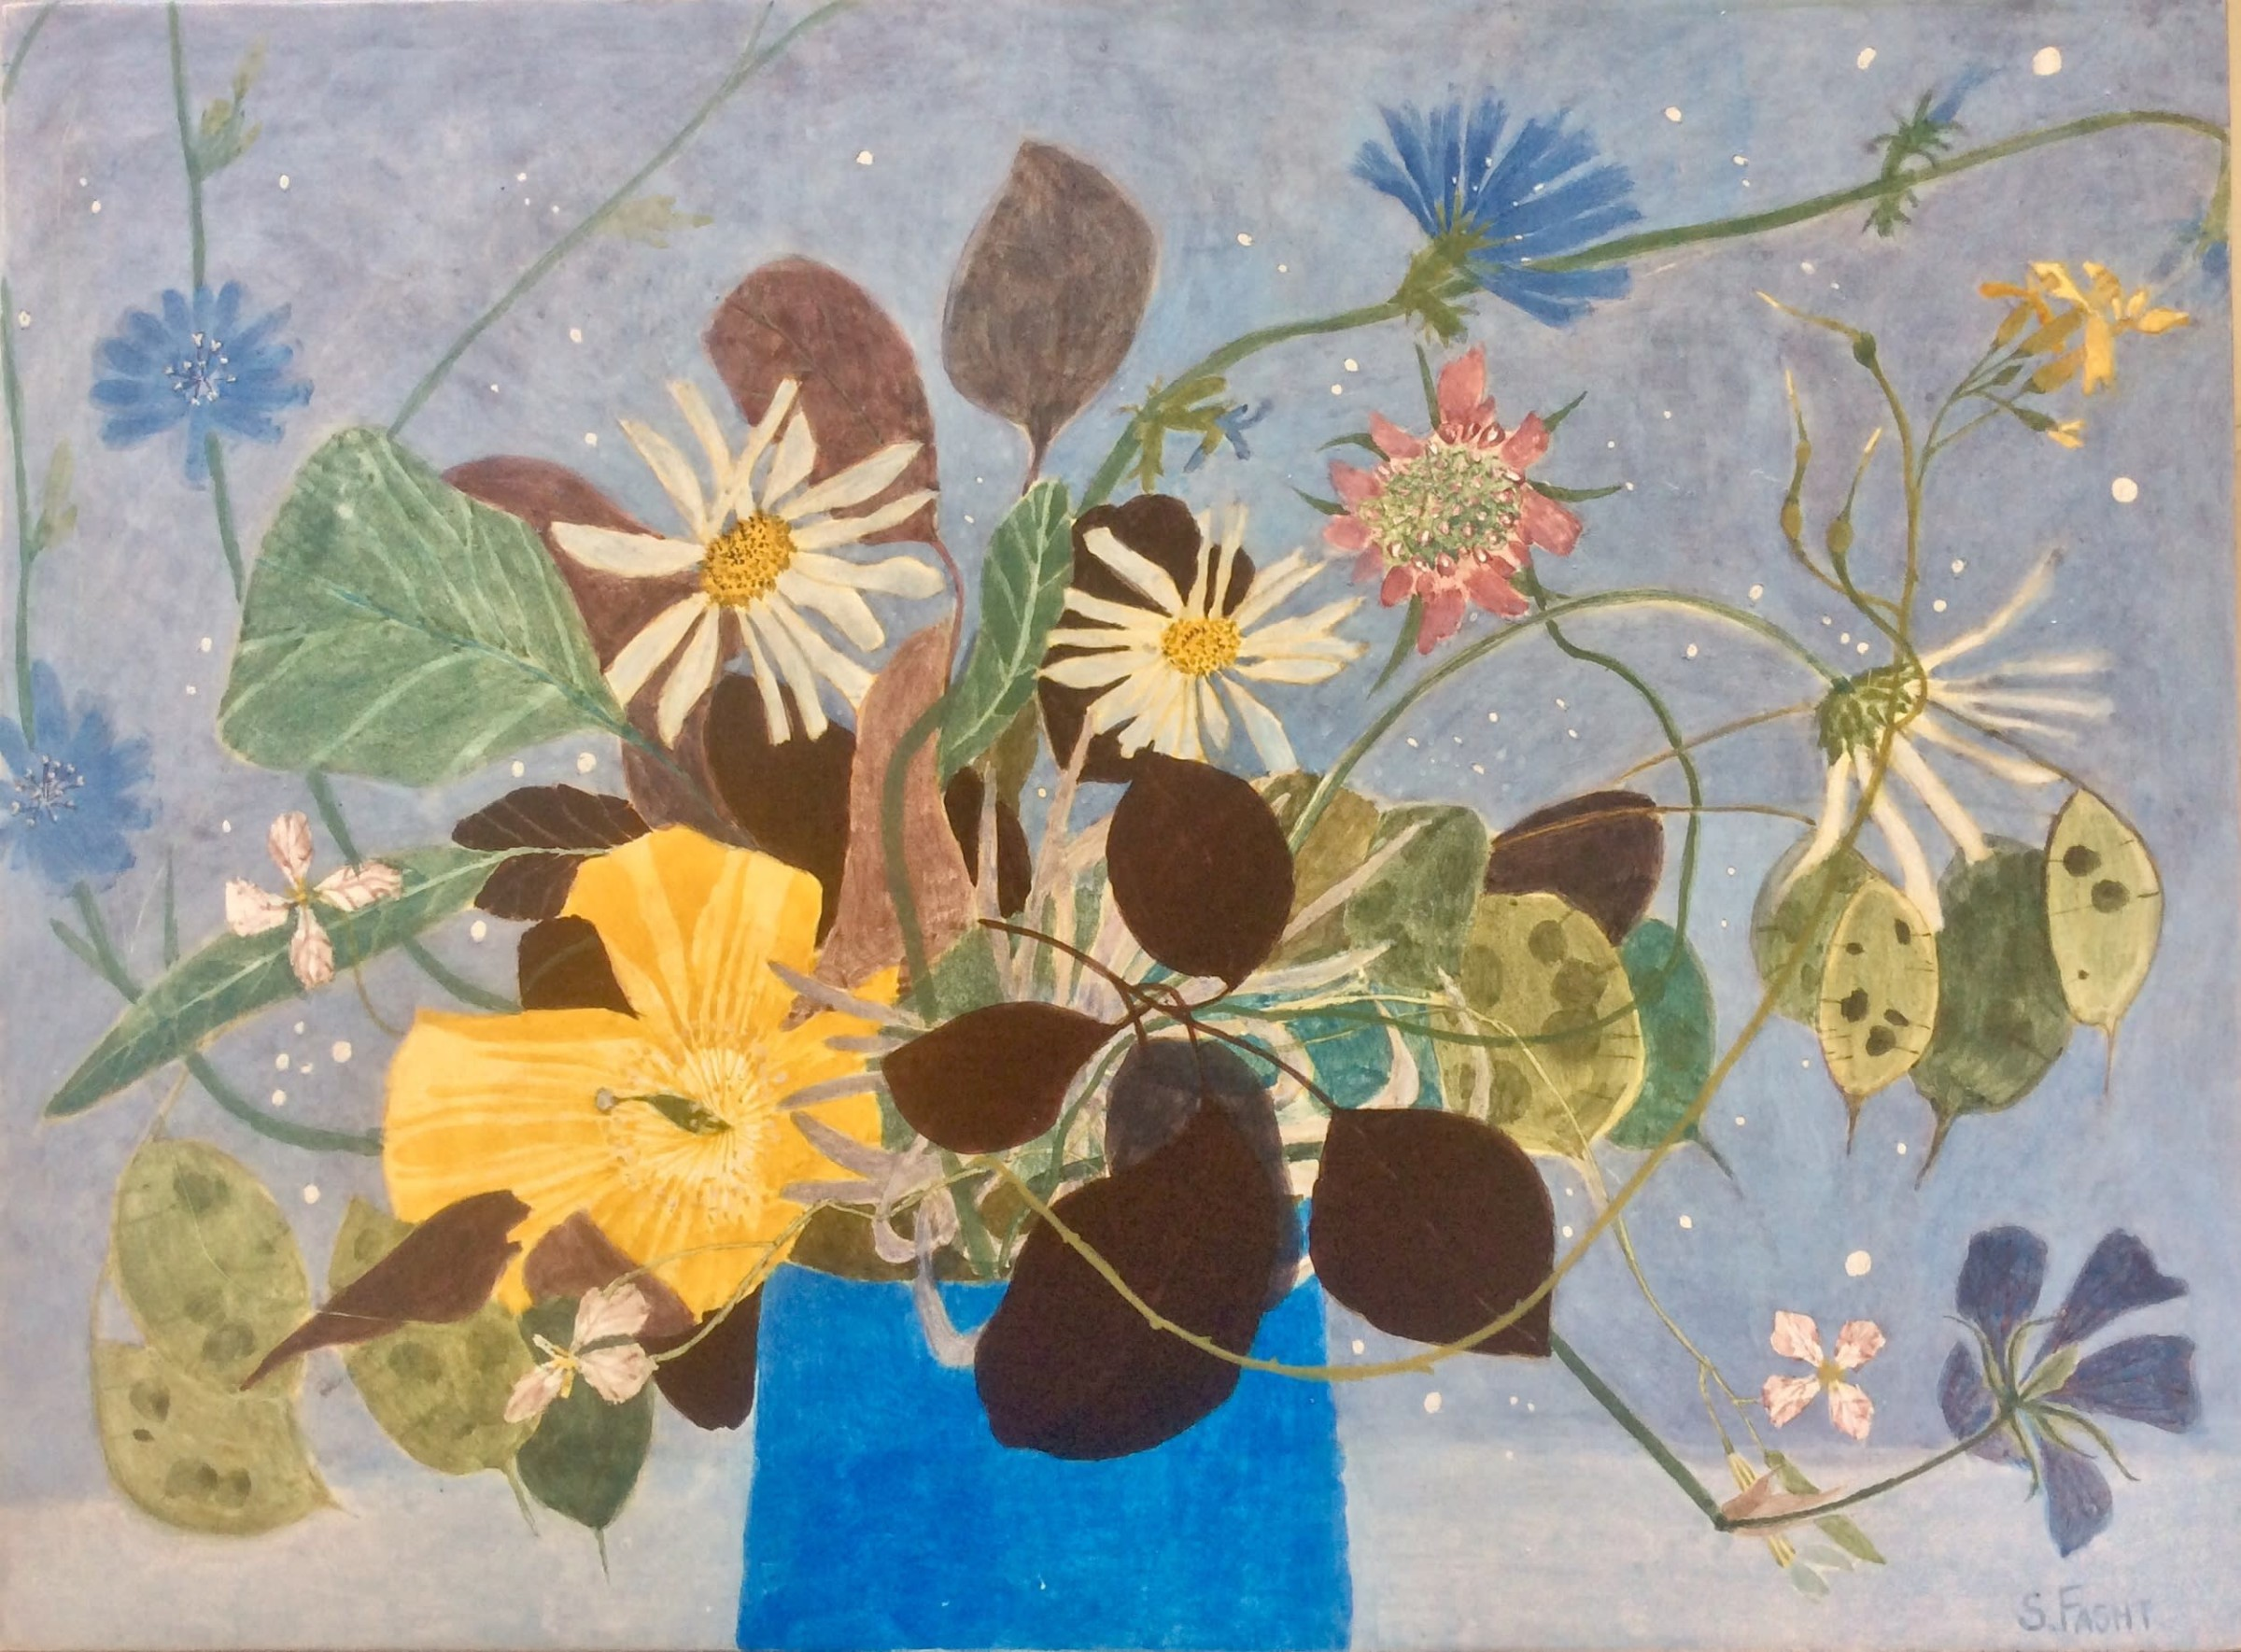 """<span class=""""link fancybox-details-link""""><a href=""""/artists/168-suzy-fasht/works/12368-suzy-fasht-summer-flowers-with-chicory/"""">View Detail Page</a></span><div class=""""artist""""><span class=""""artist""""><strong>Suzy Fasht</strong></span></div><div class=""""title""""><em>Summer Flowers with Chicory</em></div><div class=""""medium"""">egg tempera on panel</div><div class=""""dimensions"""">Frame: 43 x 53 cm<br /> </div><div class=""""price"""">£850.00</div>"""